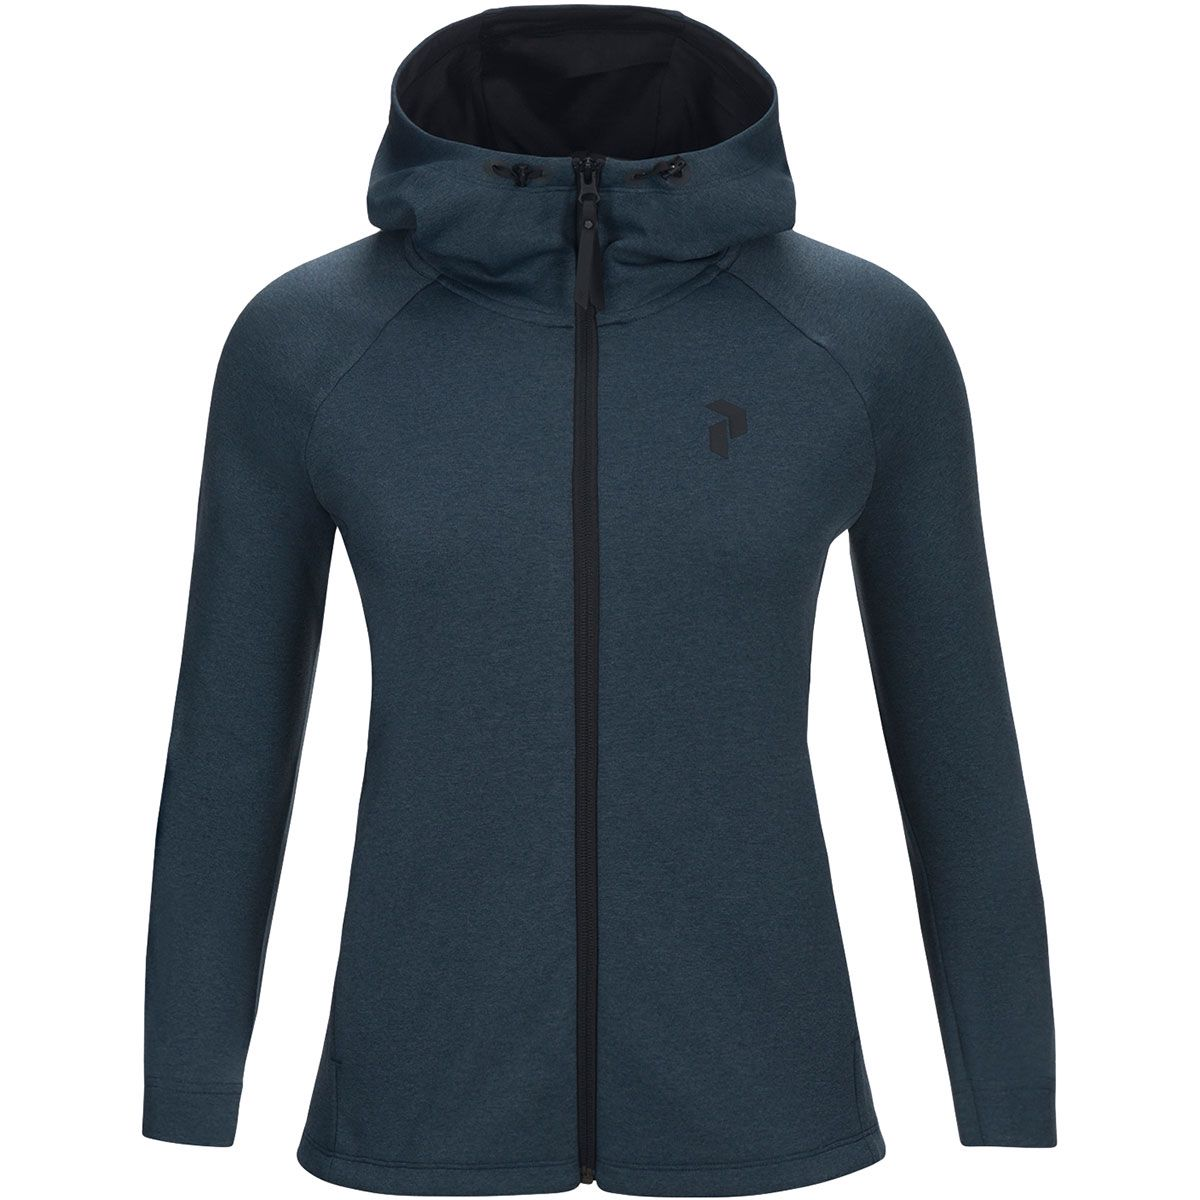 Peak Performance Damen Pulse Jacke (Größe M, Blau) | Fleecejacken > Damen